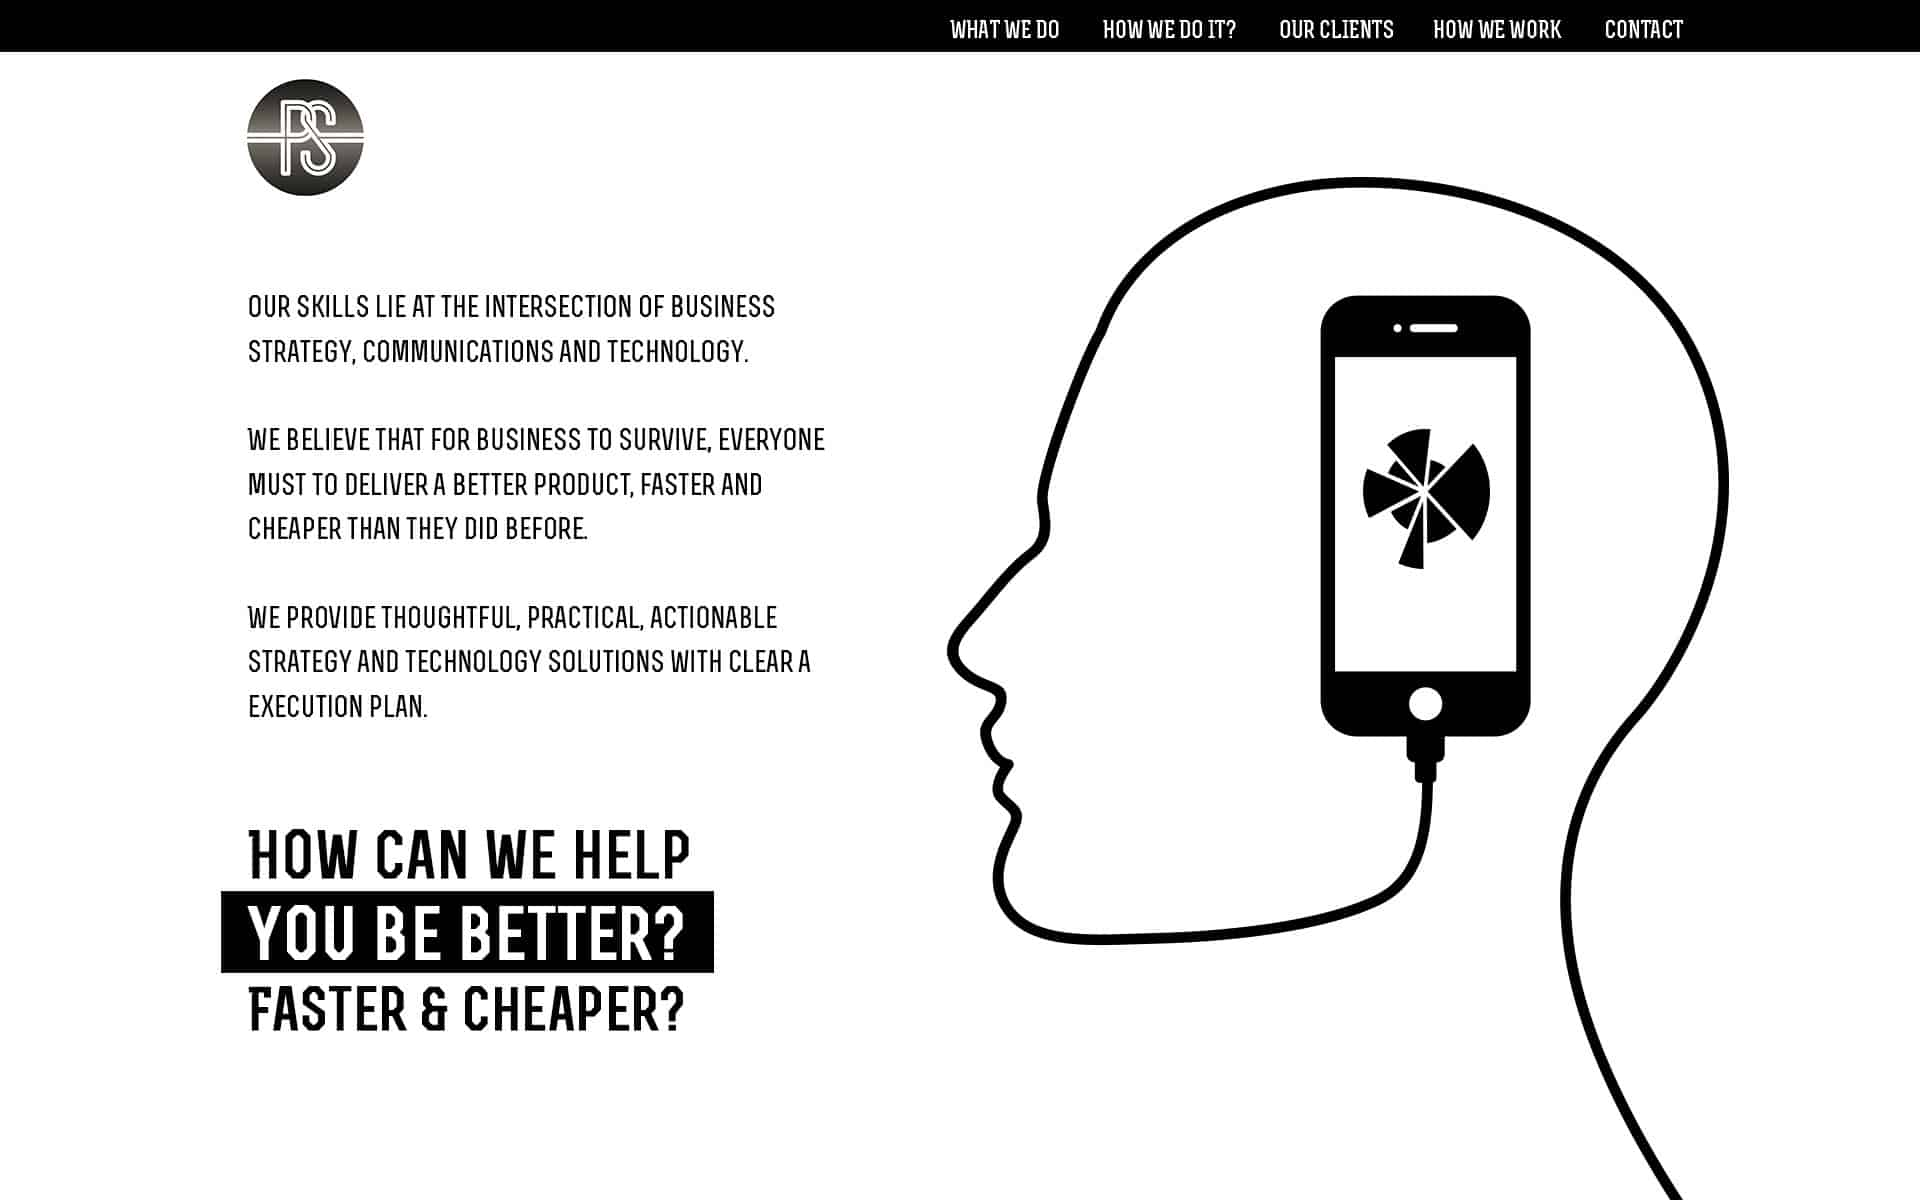 Black & White Web Design Trends